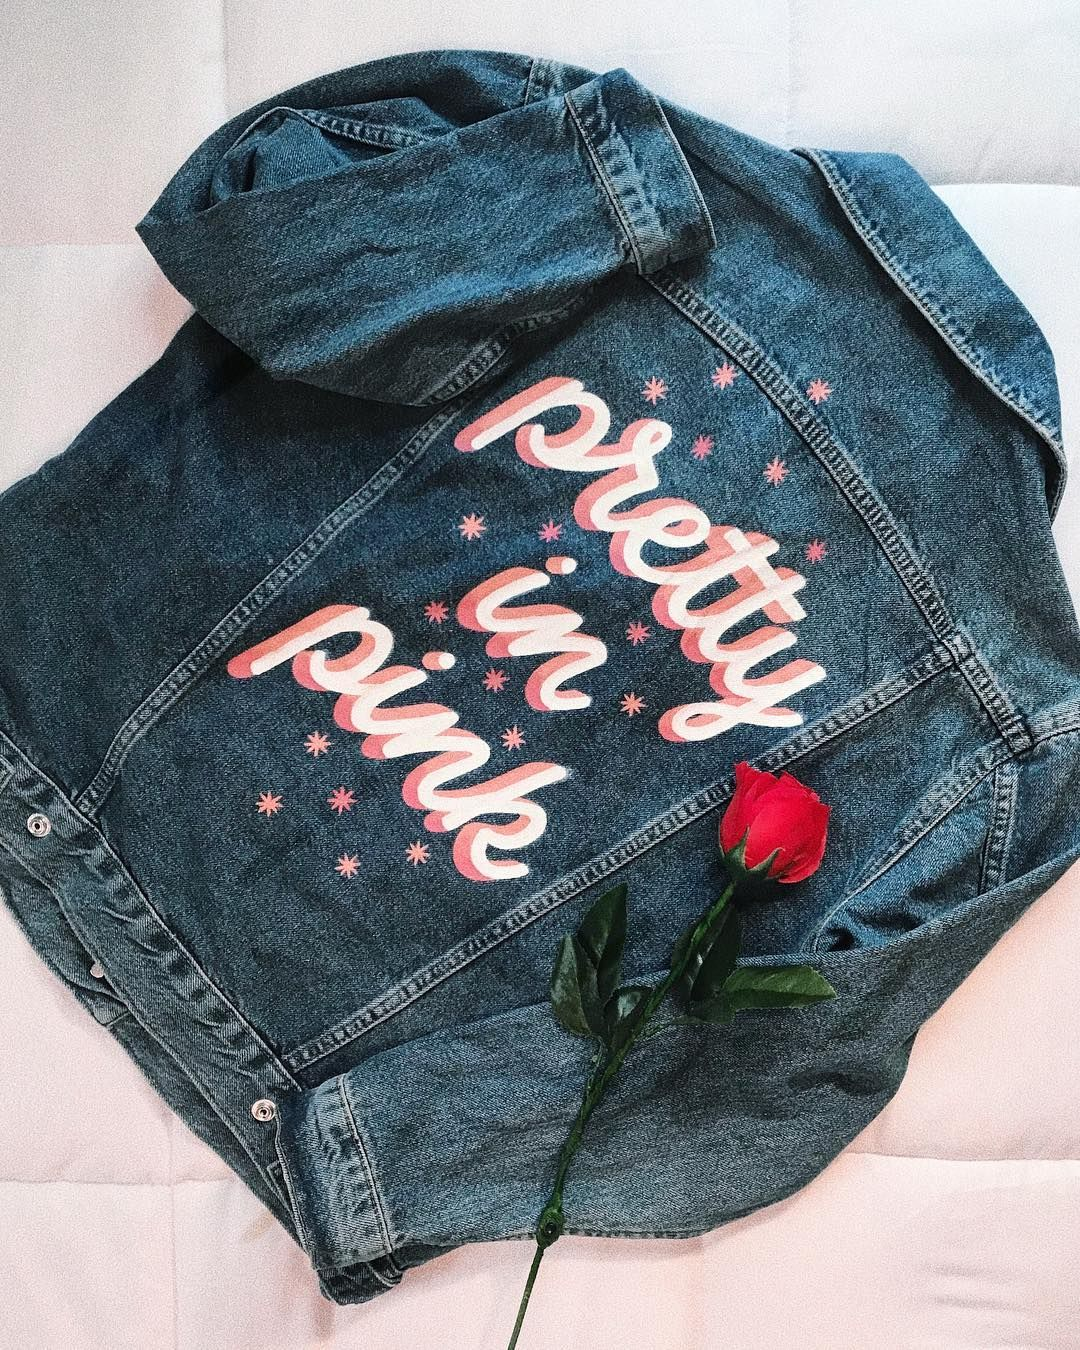 """LAUREN SCHNEIDER on Instagram: """"on fridays we're pretty in pink� • nothing like hand painted denim to accessorize in spring � let me paint for you - link in bio �"""""""